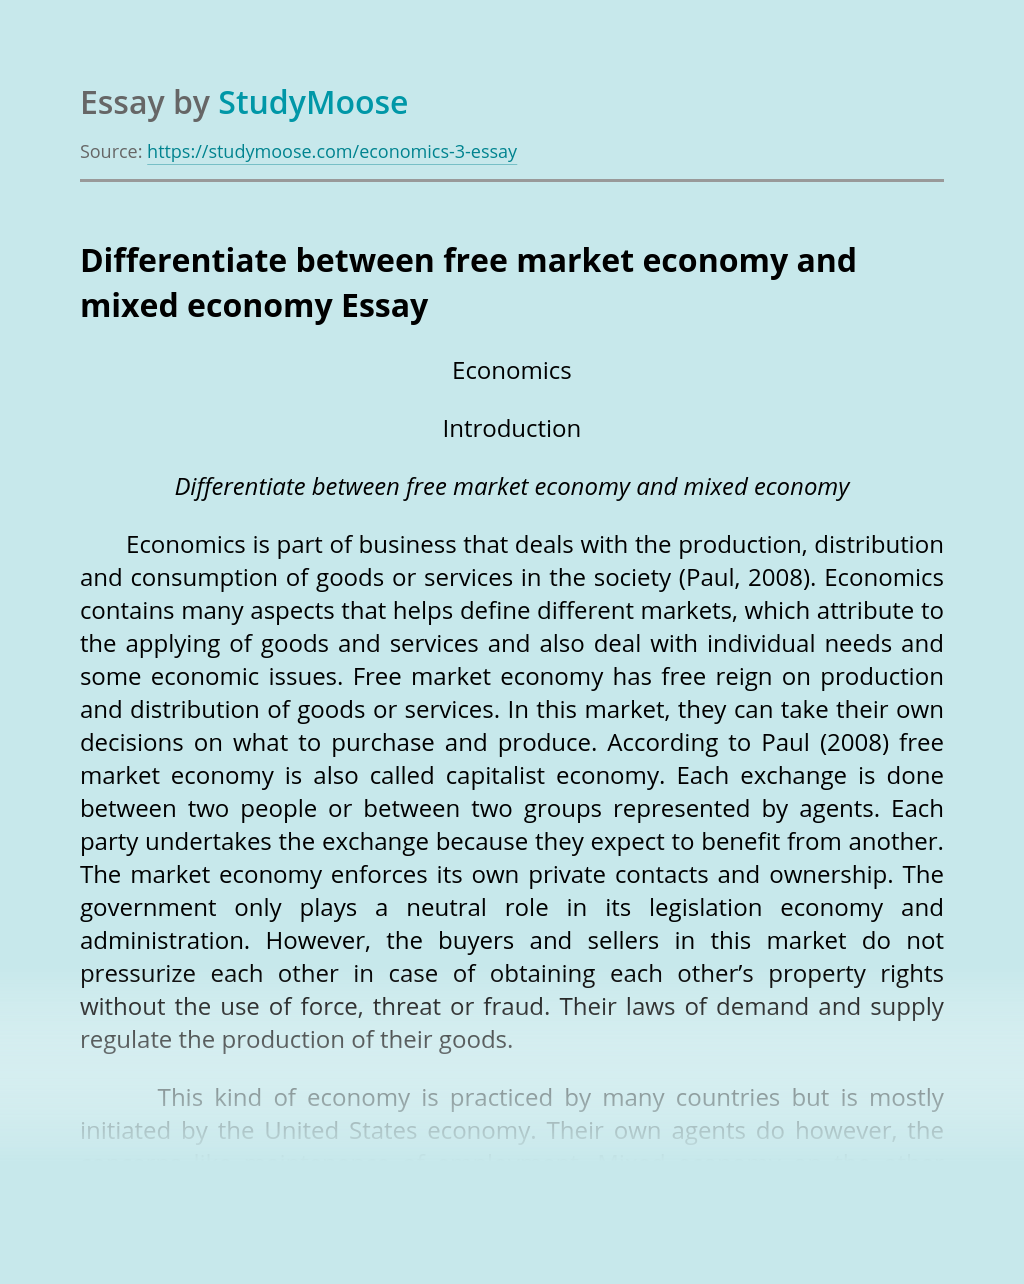 Differentiate between free market economy and mixed economy